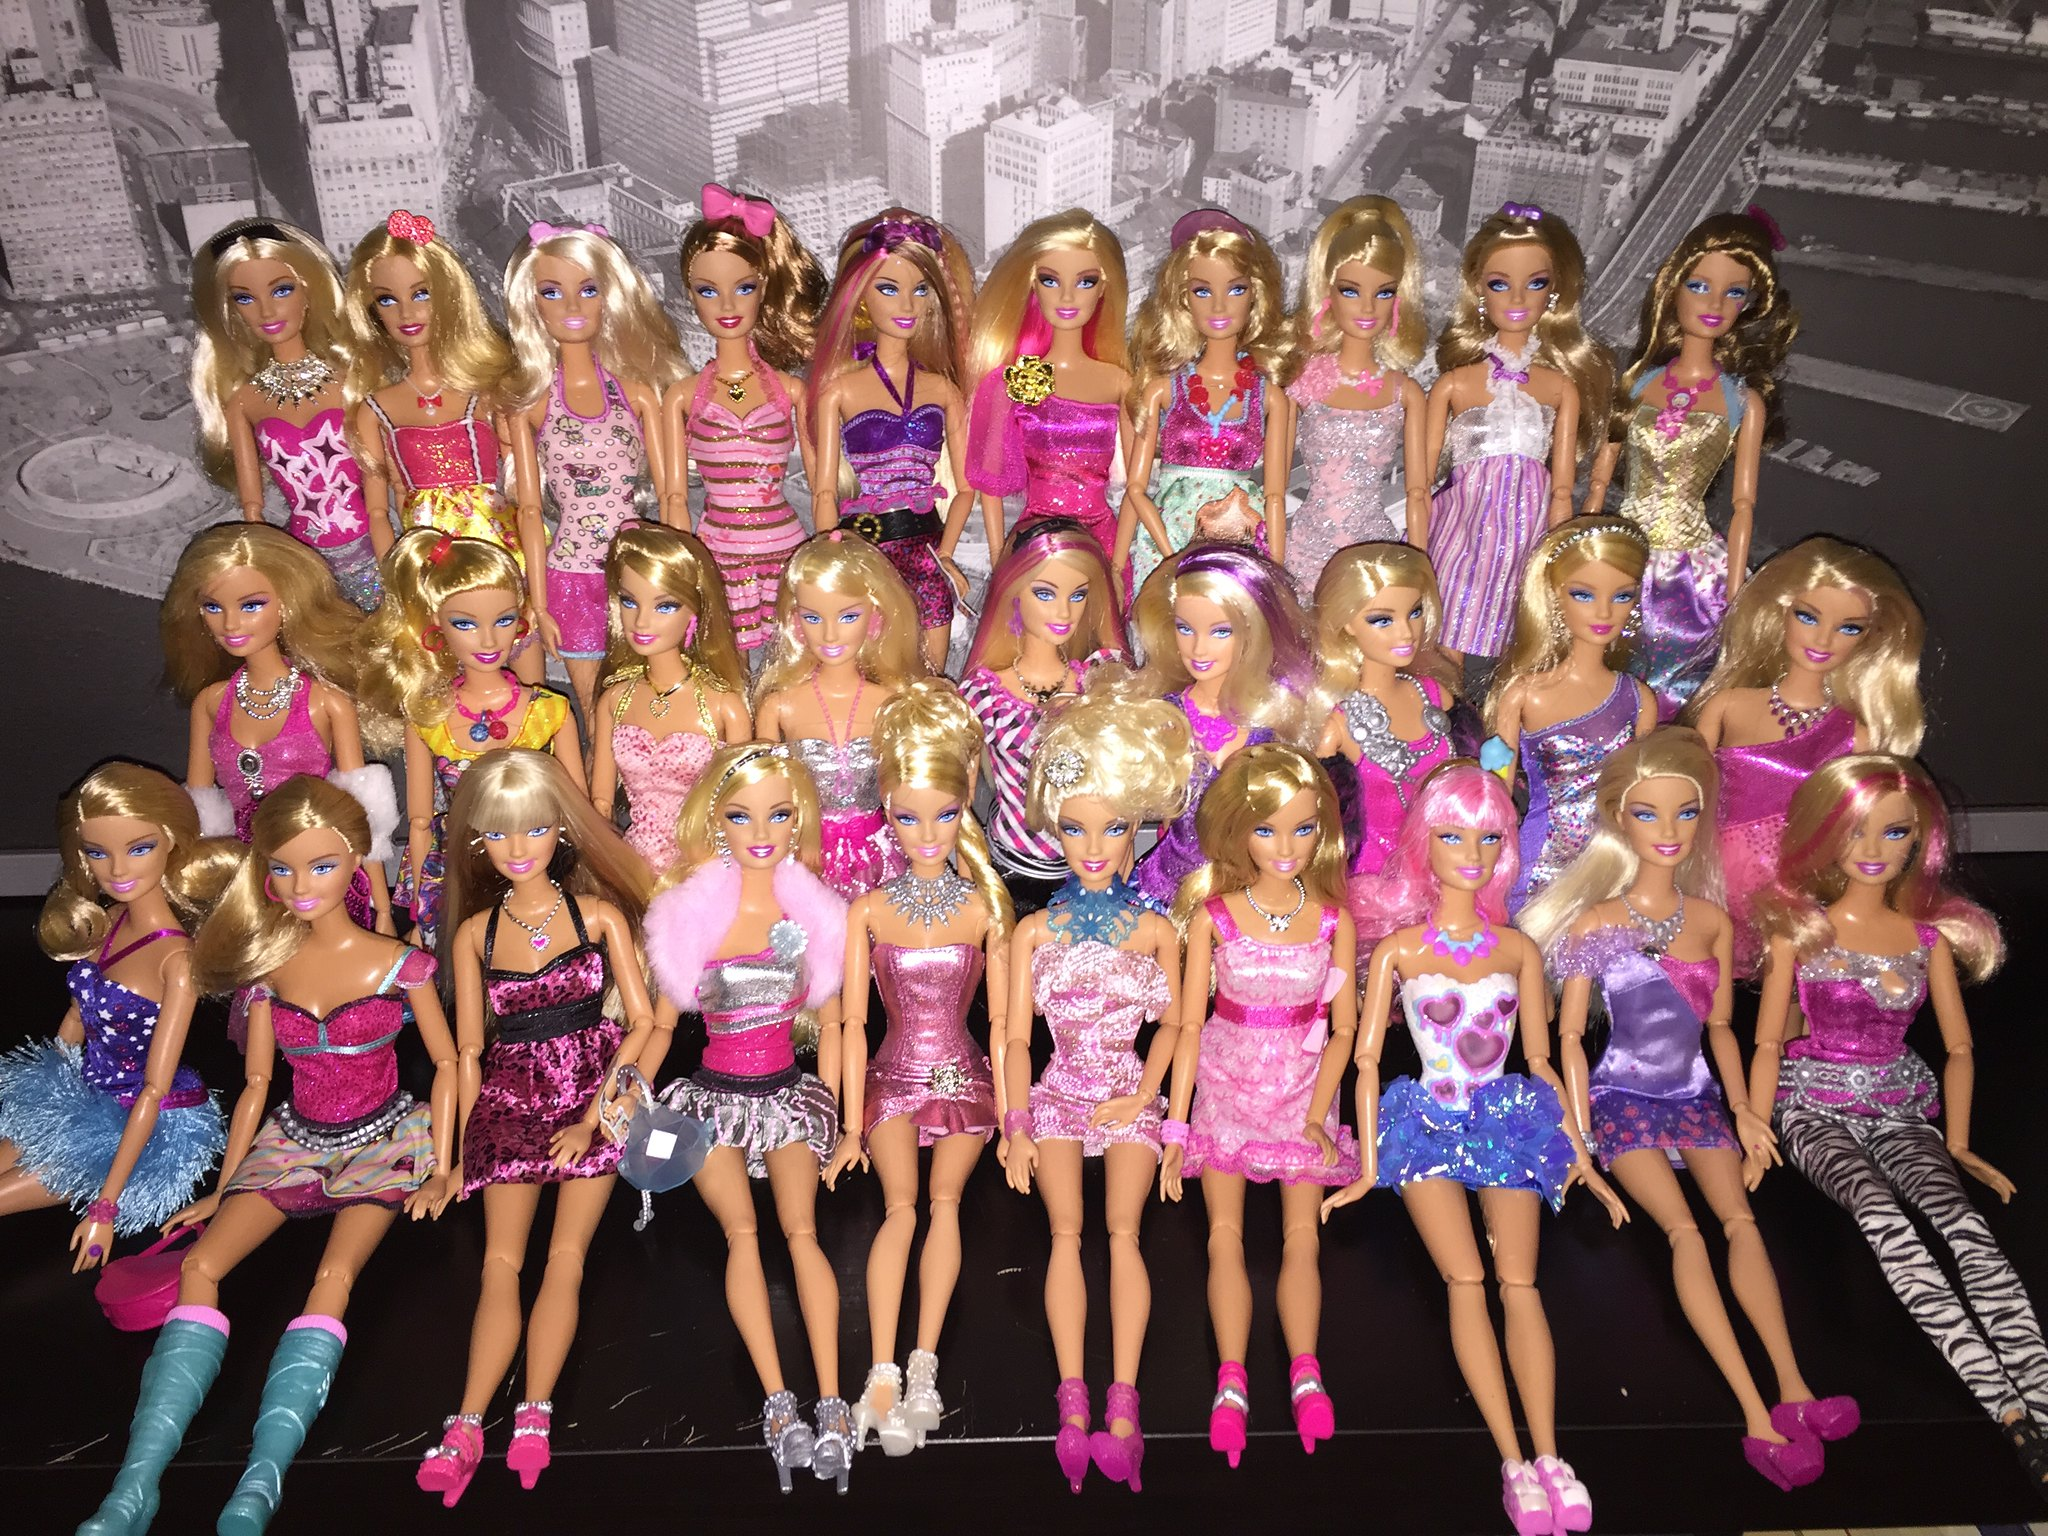 Barbie Fashionistas Collection #barbie #doll #dolls #mattel #fashionistas #collection #teresa #raquelle #summer #nikki #artsy #sporty #glam #sweety #cutie #sassy #ken #ryan #maledollcollector #guydollcollector #gaydollcollector